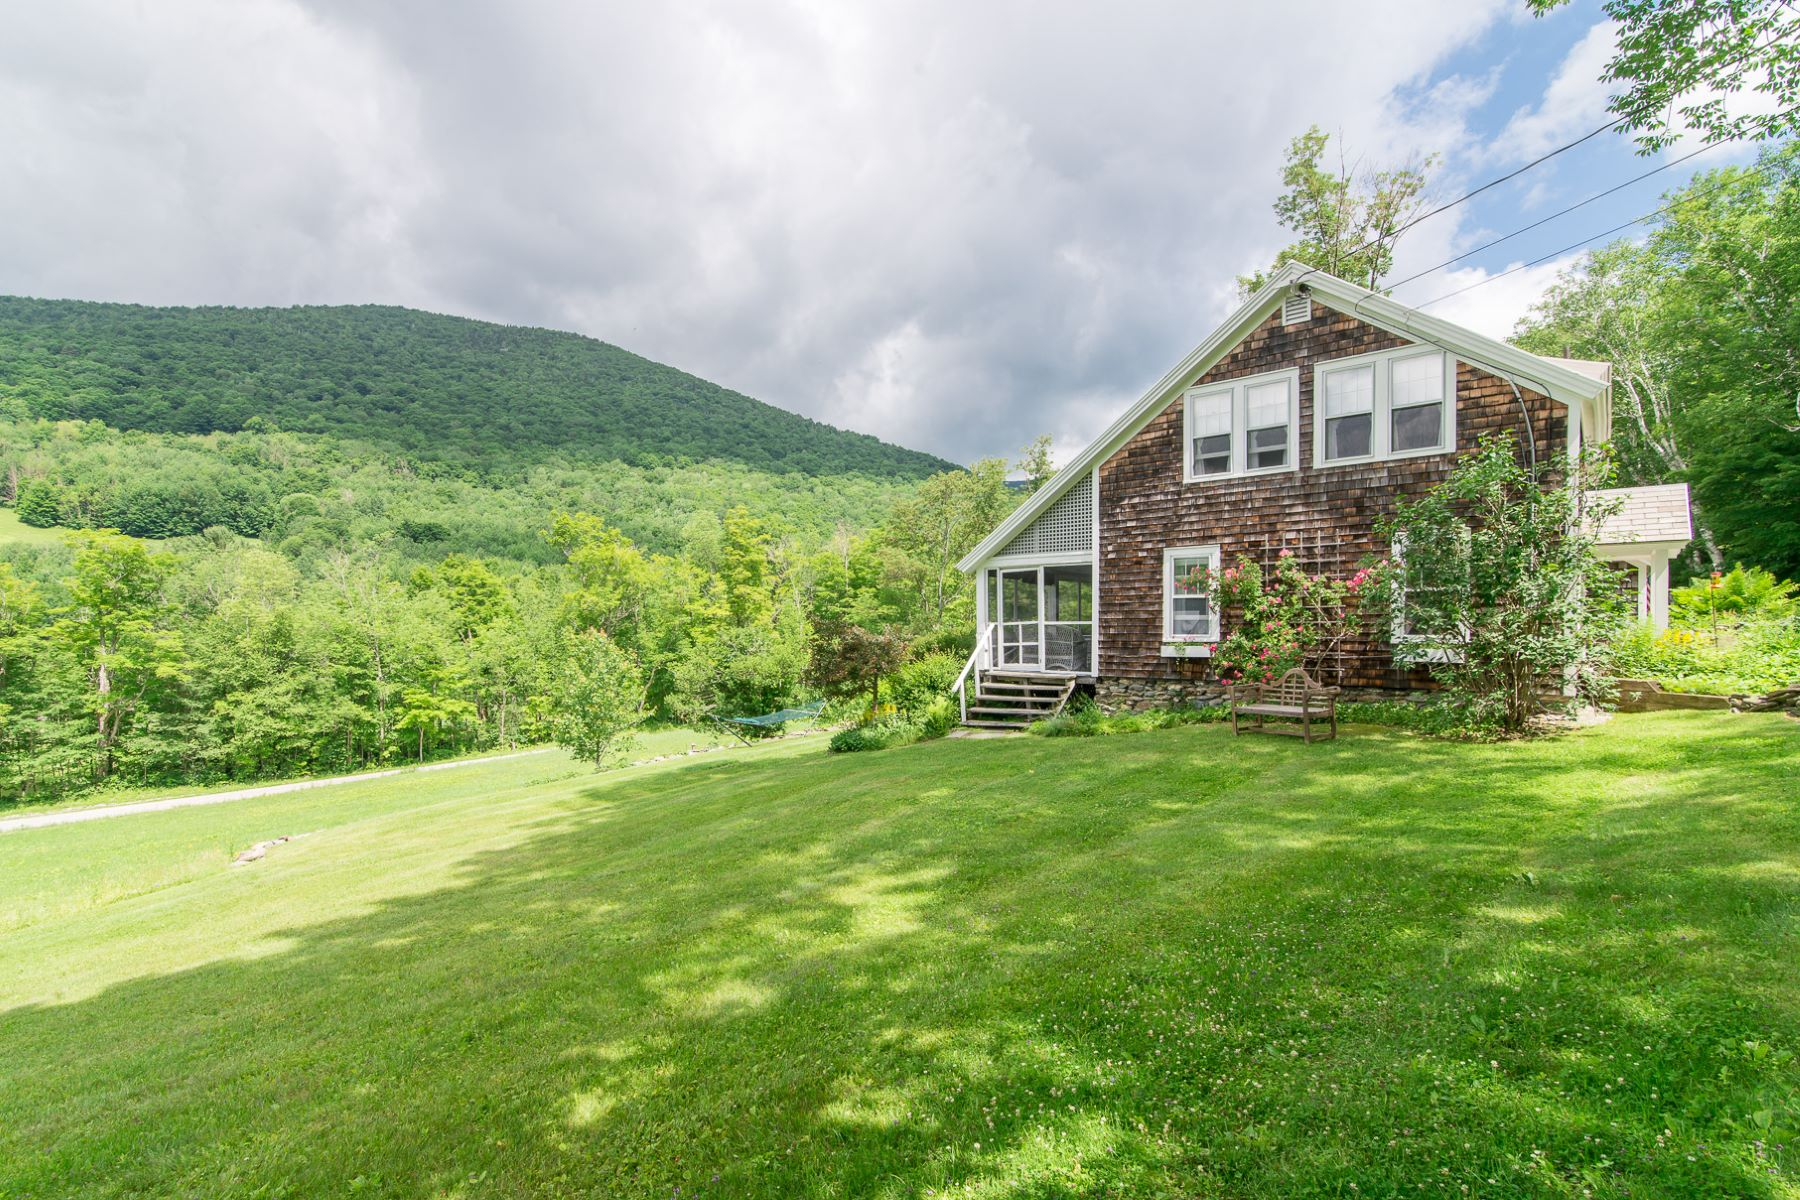 واحد منزل الأسرة للـ Sale في Dorset Hollow Lodge 2491 Lower Hollow Rd Dorset, Vermont, 05251 United States